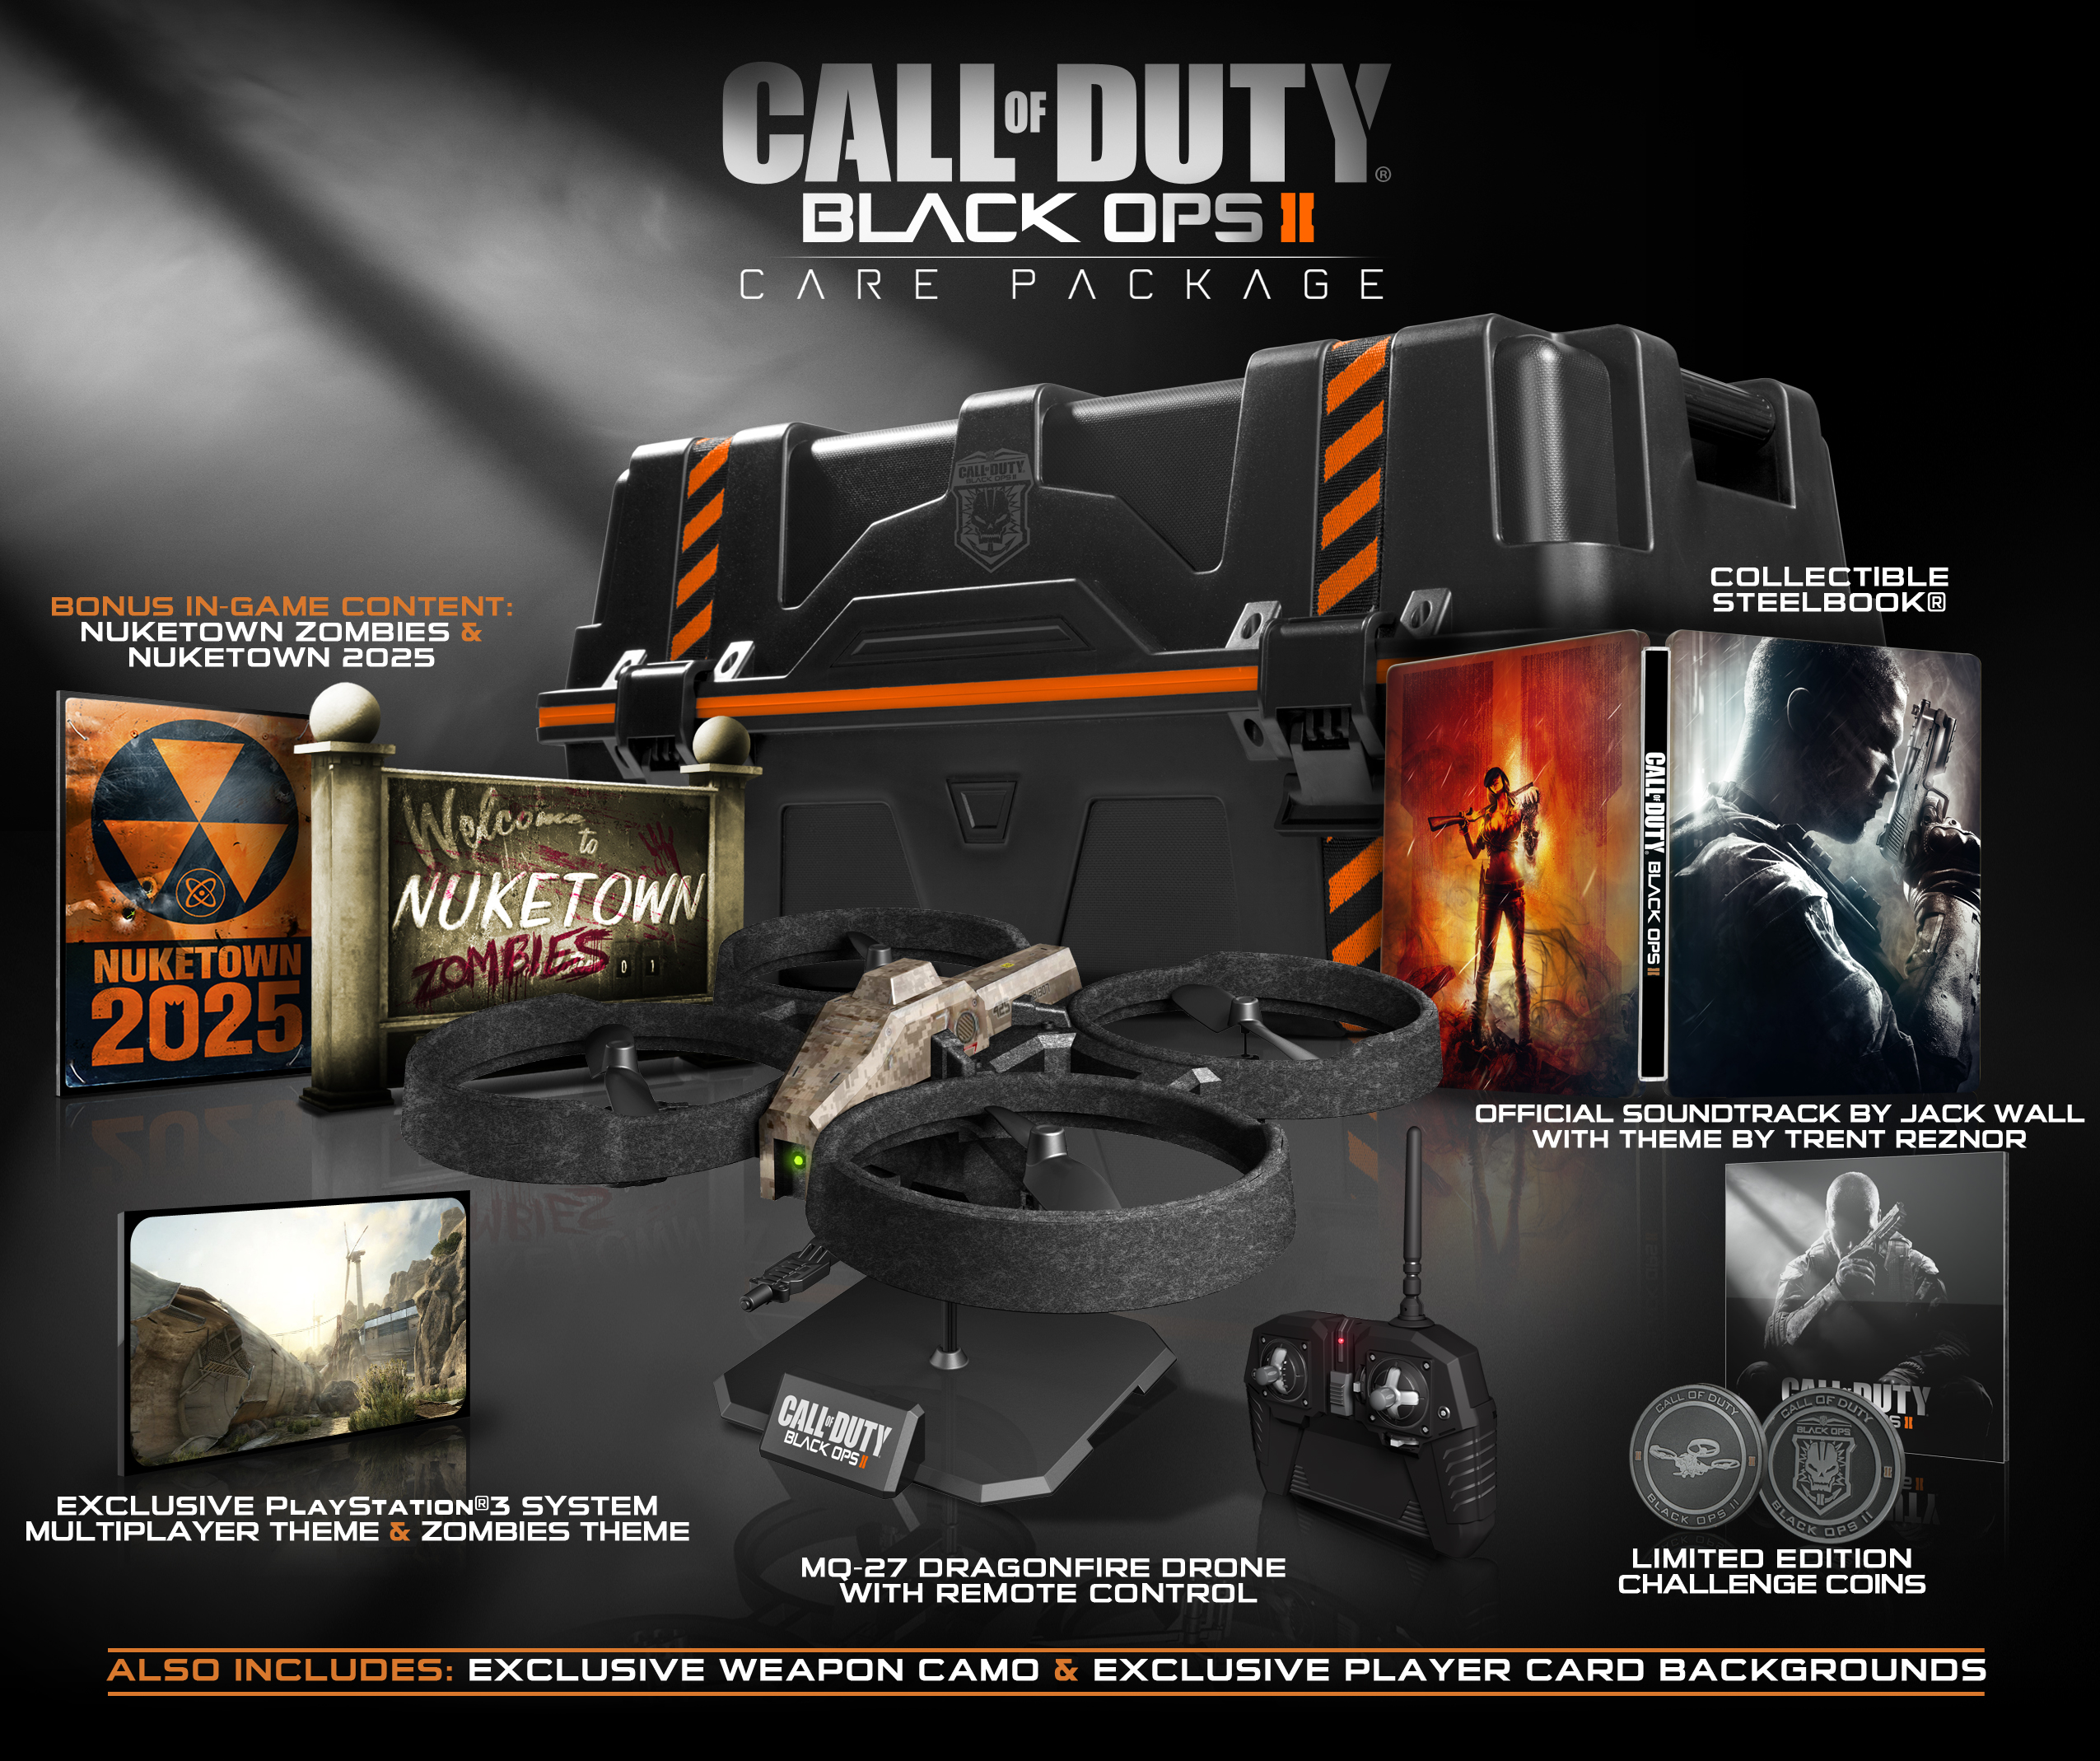 Black Ops 2 Collector's Editions Revealed | MonsterVine on call duty black ops 2 zombies buried, call of duty black ops zombies call of the dead, black ops all zombie maps, call of duty black ops five map, black ops 2 multiplayer maps, call of duty black ops kino der toten map, call of duty black ops coloring pages, call of duty zombies map packs, black ops 1 zombie maps, call of duty black ops zombies moon map, call of duty black ops 3 release date, call of duty all zombie maps,